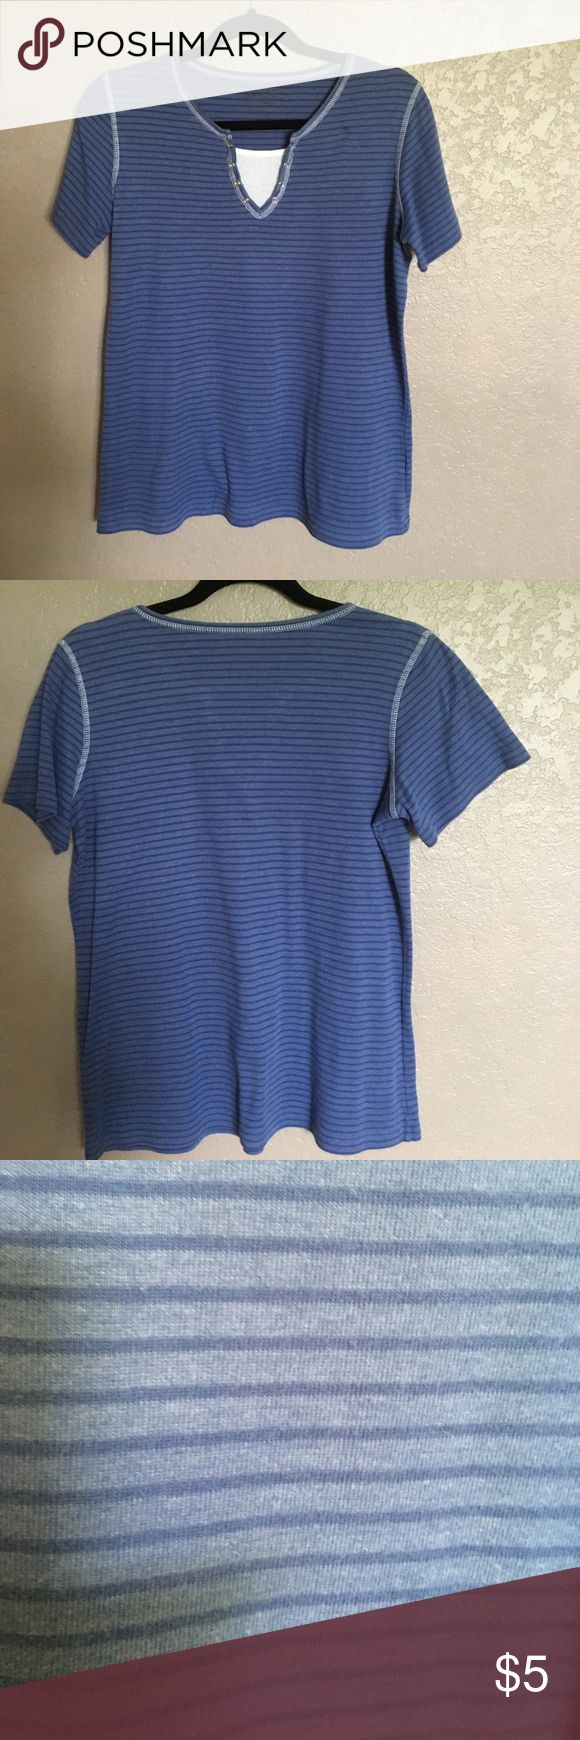 Blue and white top Short sleeved blue on blue striped cotton top with faux white tee piece. Chrystal Adobe Tops Tees - Short Sleeve